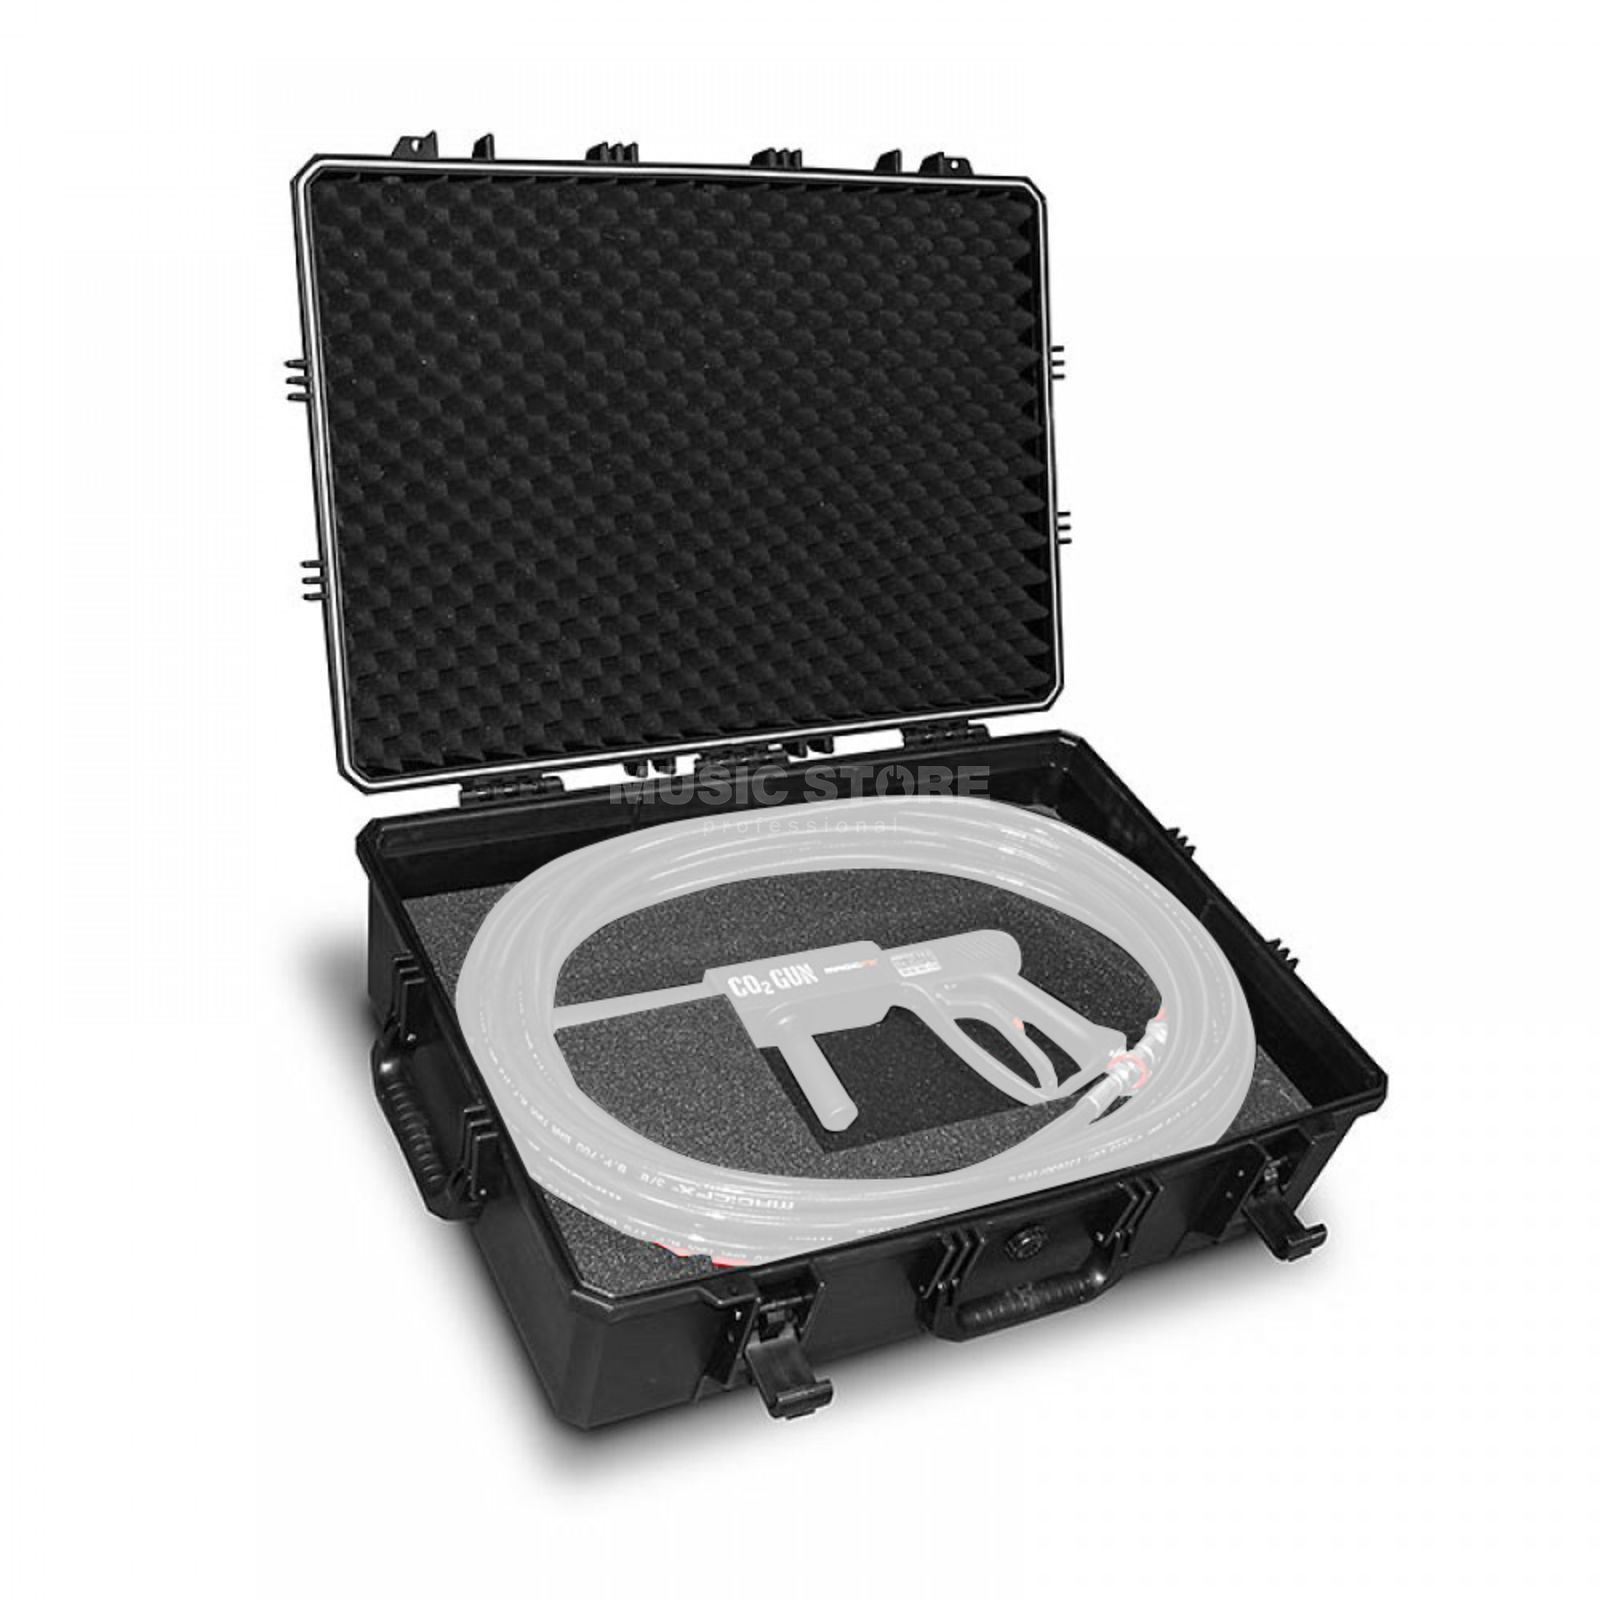 MagicFX Case for CO2 Gun Produktbild